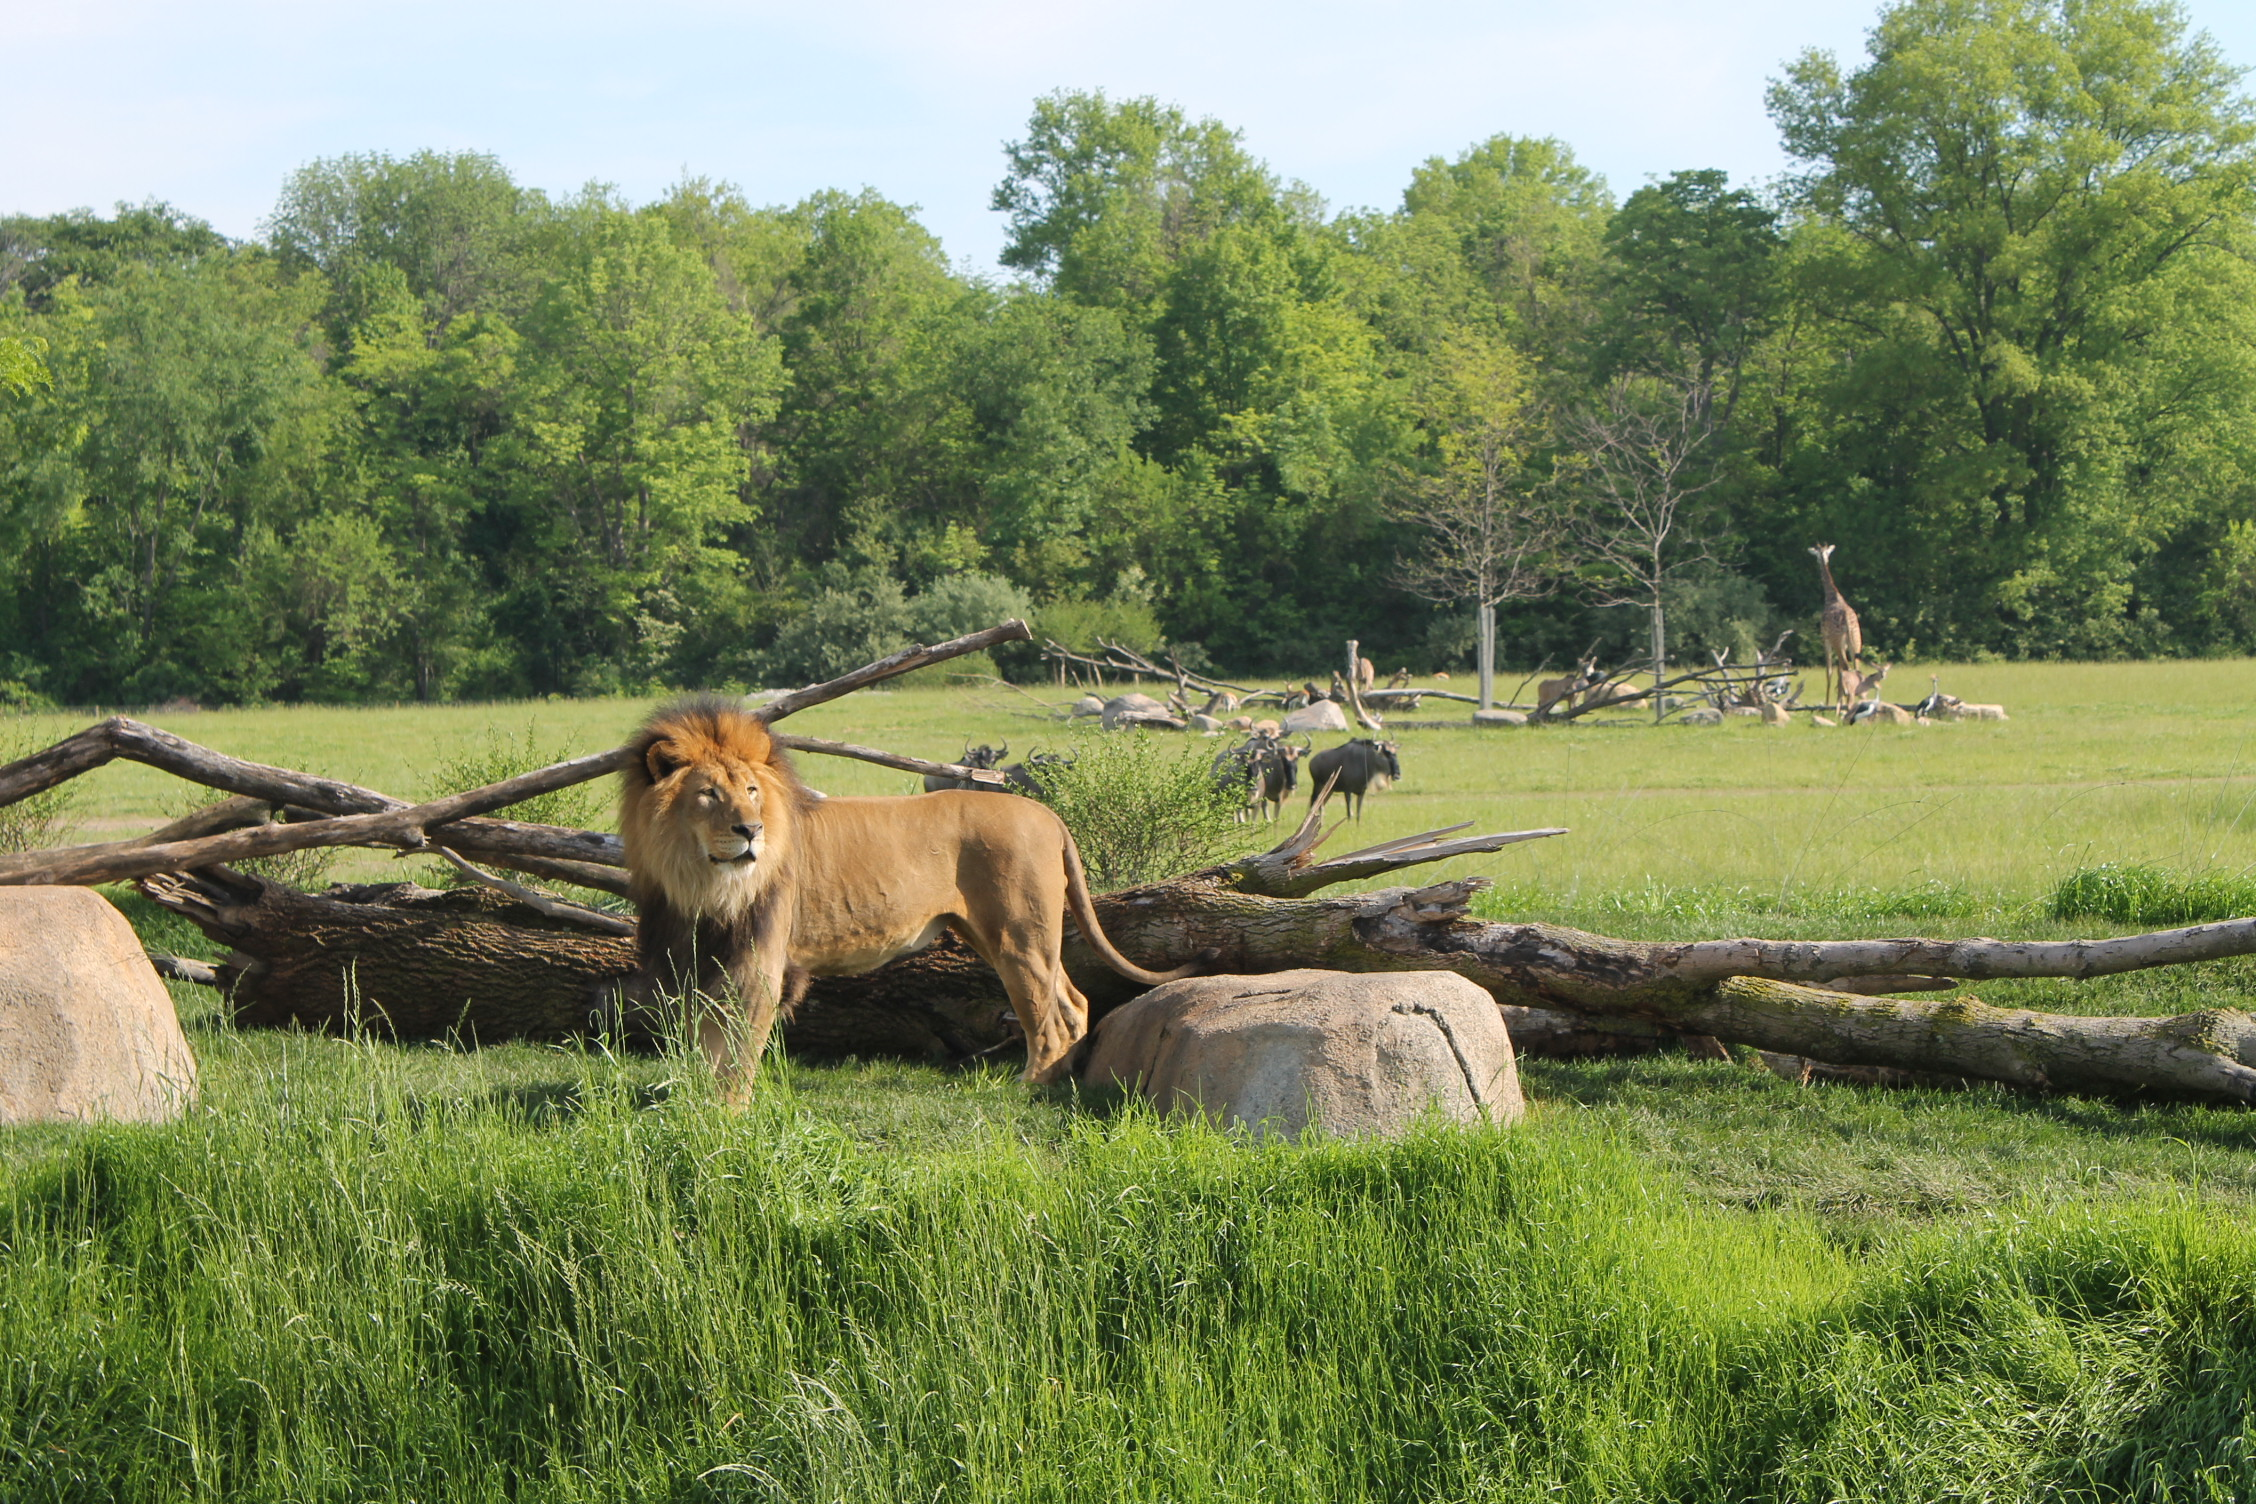 The view of the lion habitat and across the savanna beyond from the village plaza.